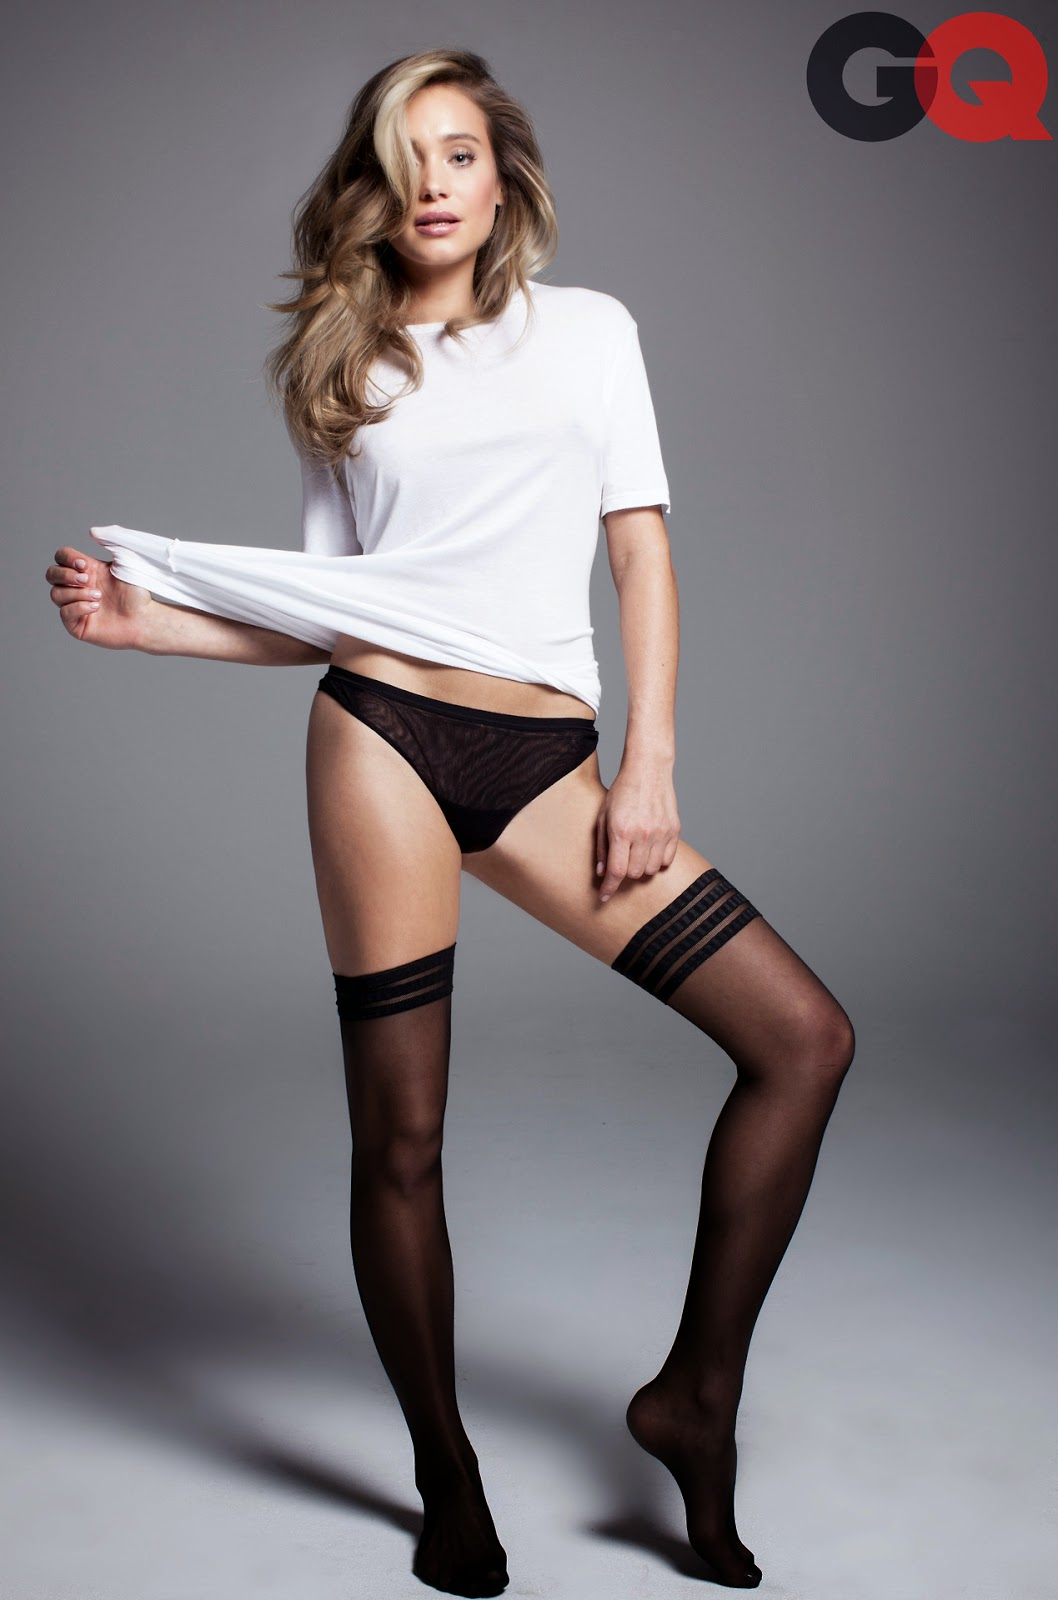 Hannah Davis sexy socks in April 2014 issue of GQ mag